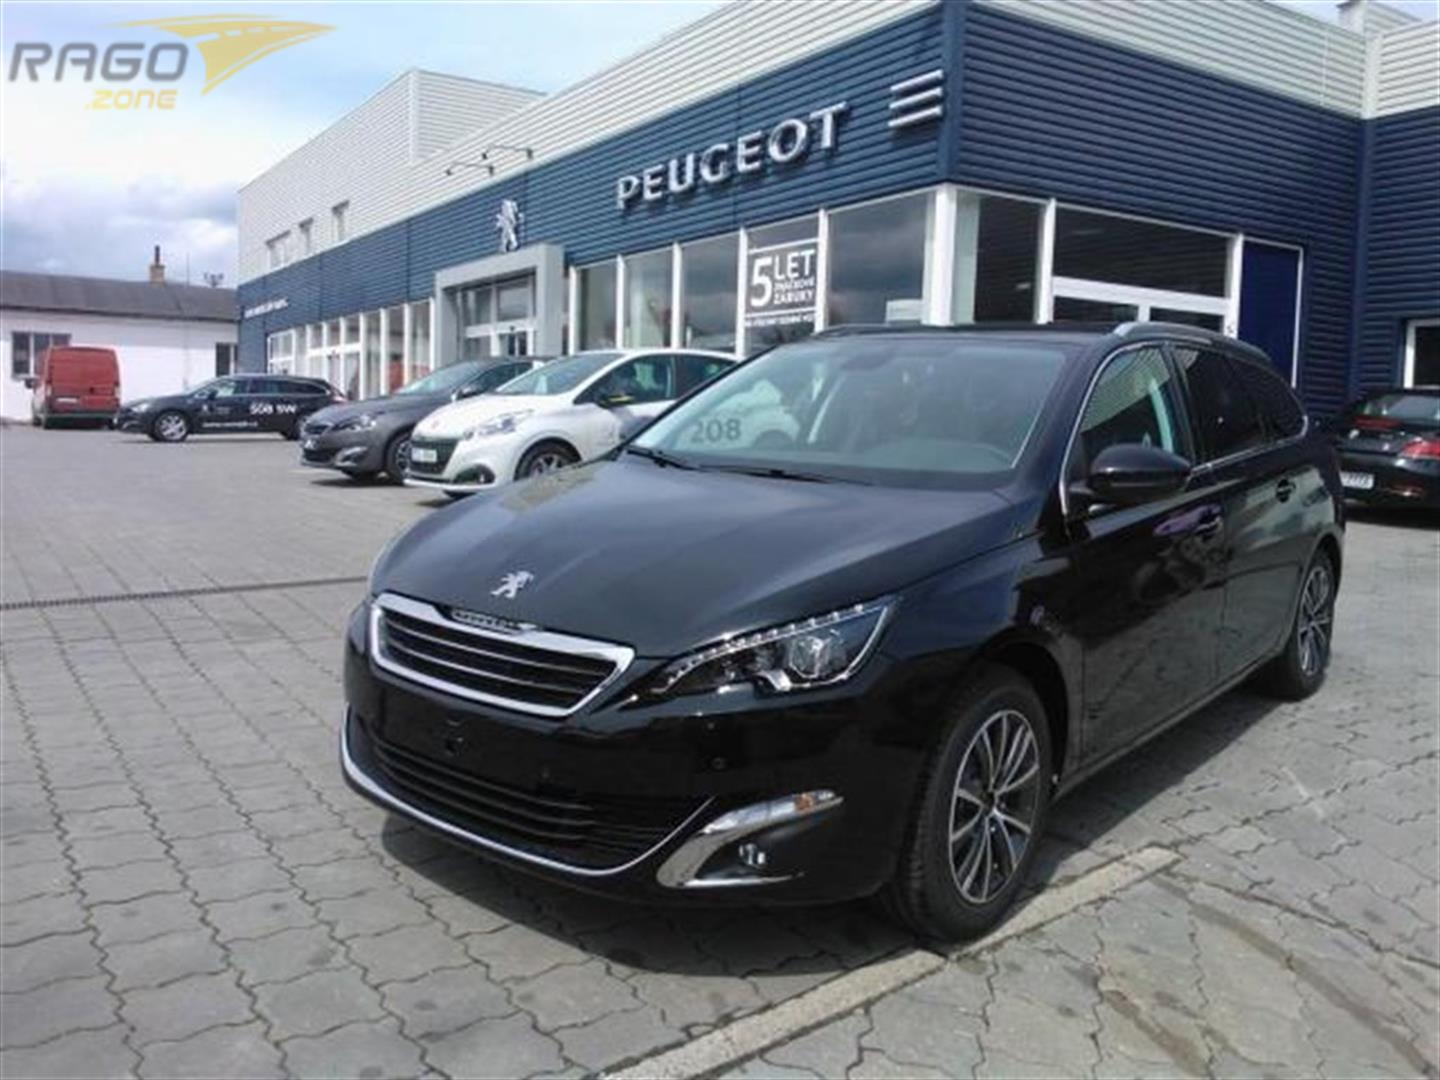 prodej peugeot 308 sw allure 1 6 bluehdi 120k kombi rok 2016 inzer t 372258. Black Bedroom Furniture Sets. Home Design Ideas